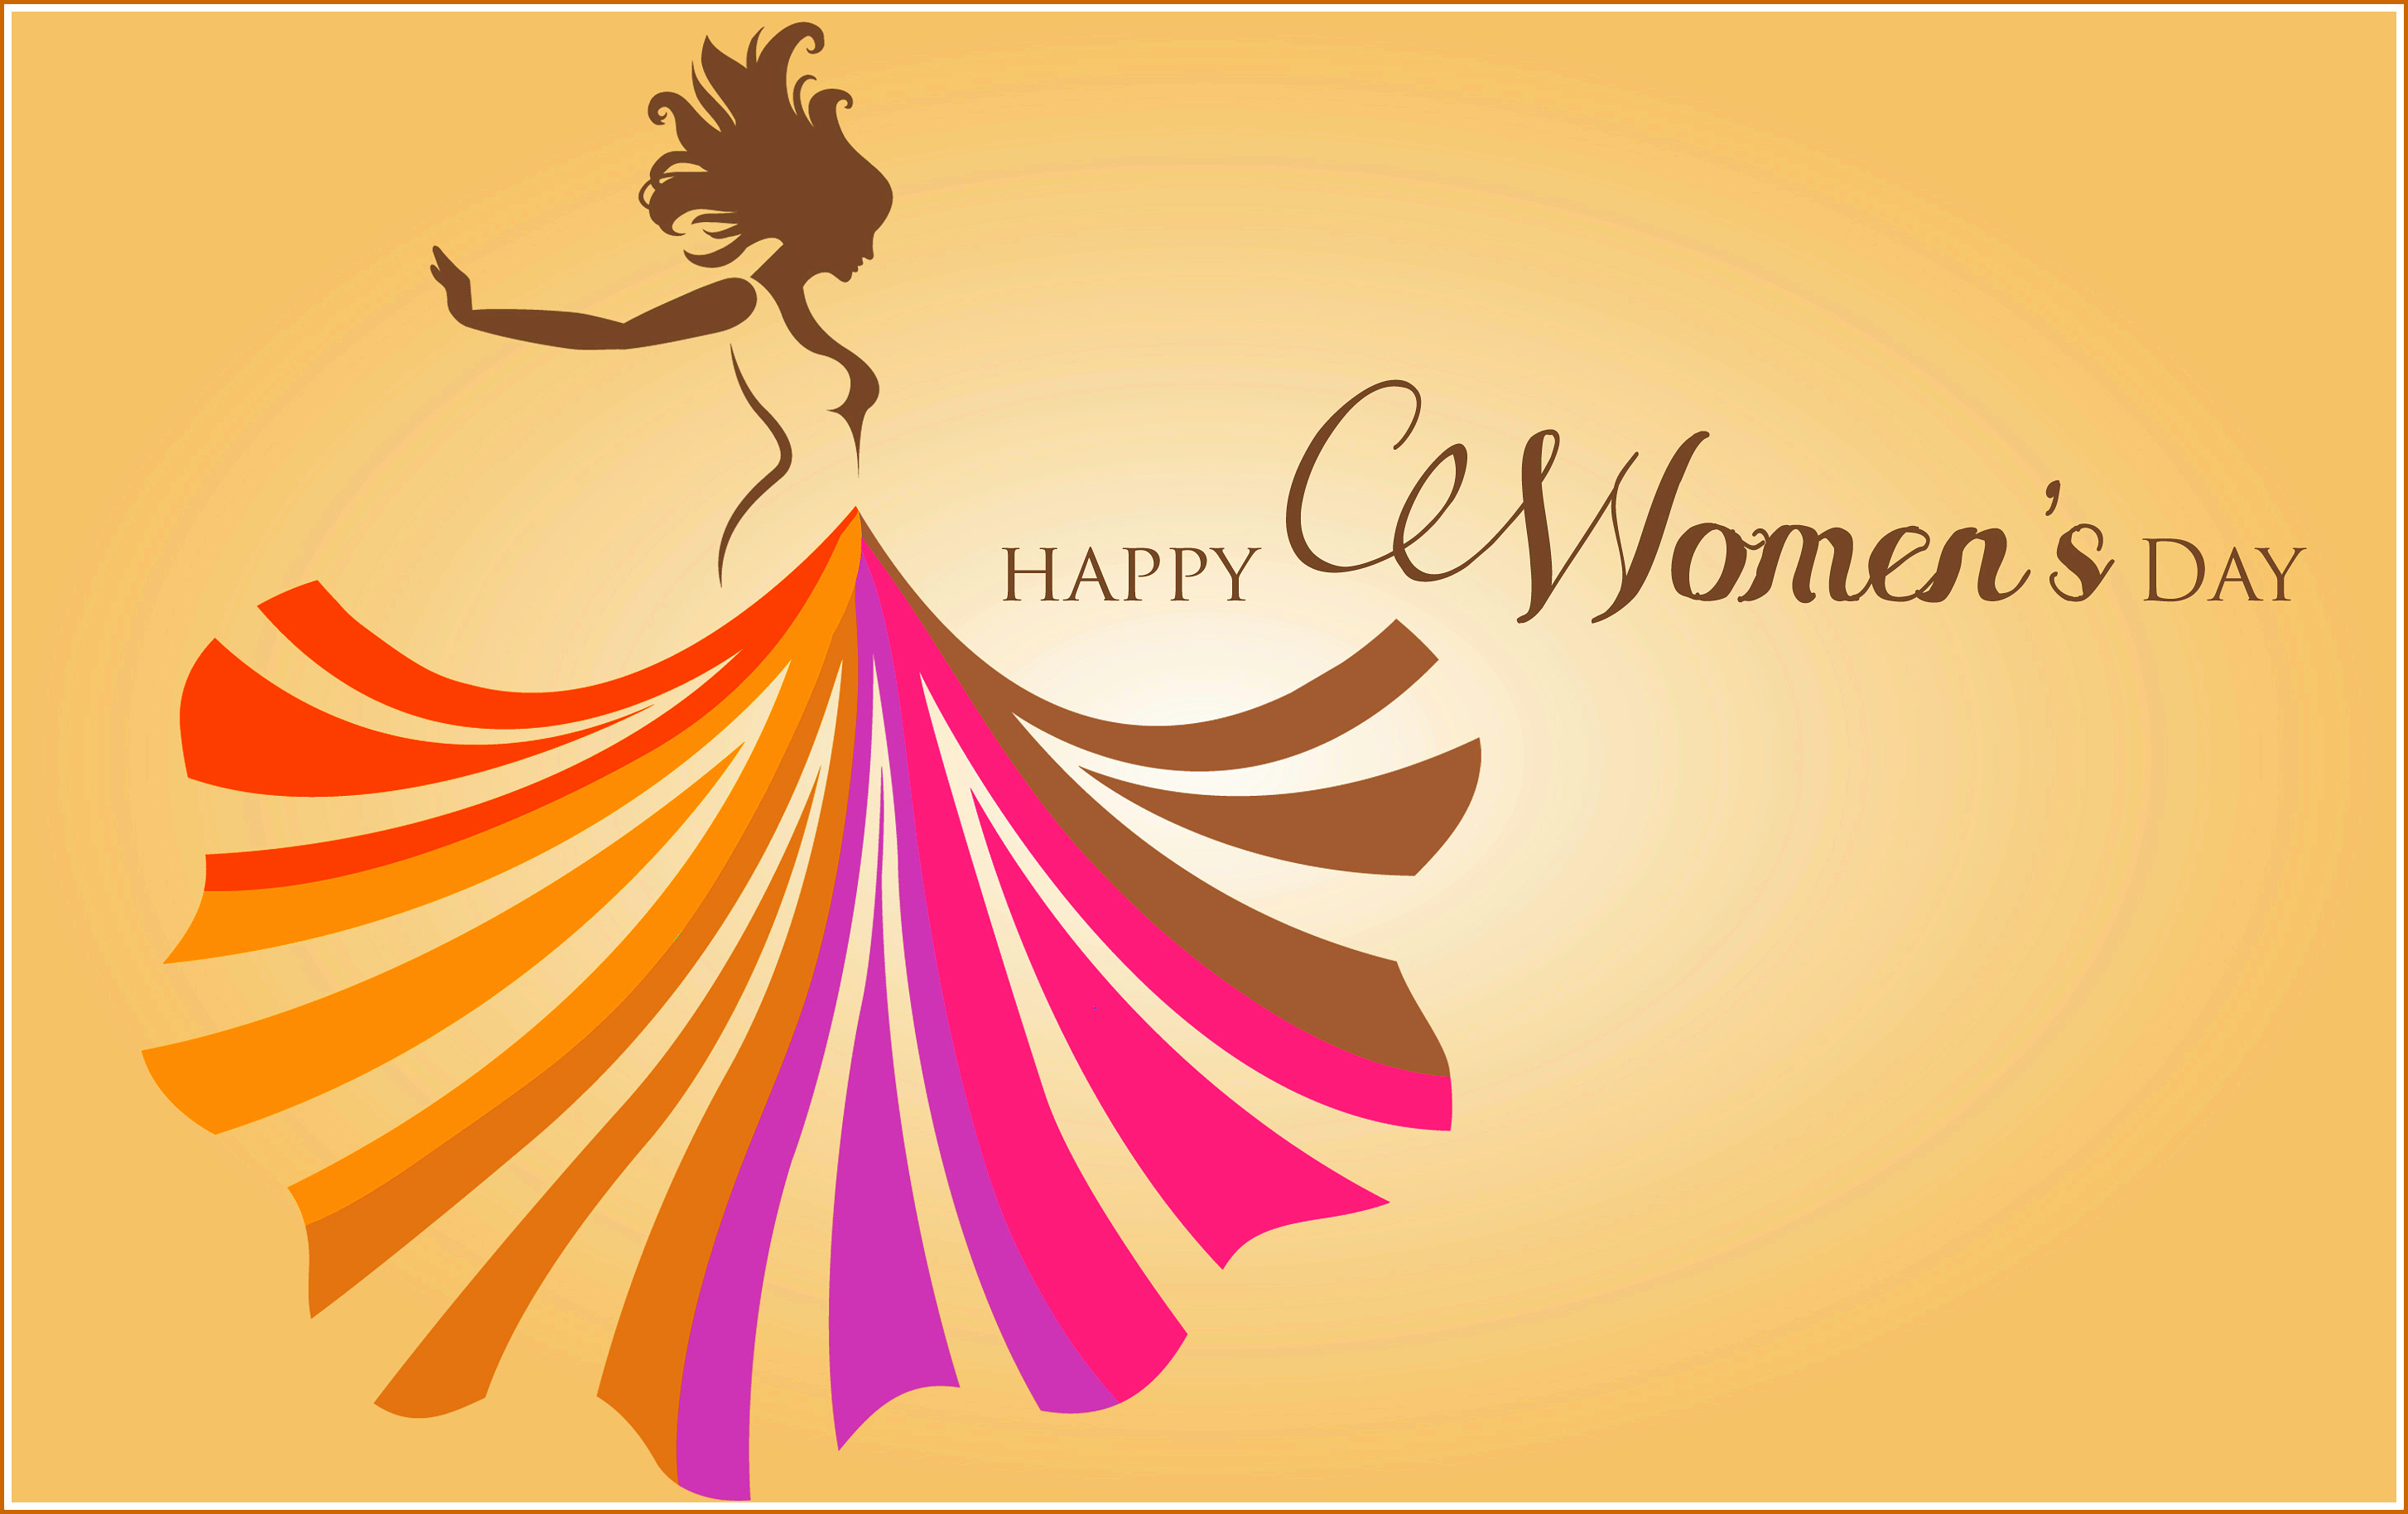 Happy Women's Day Image For Facebook 2017